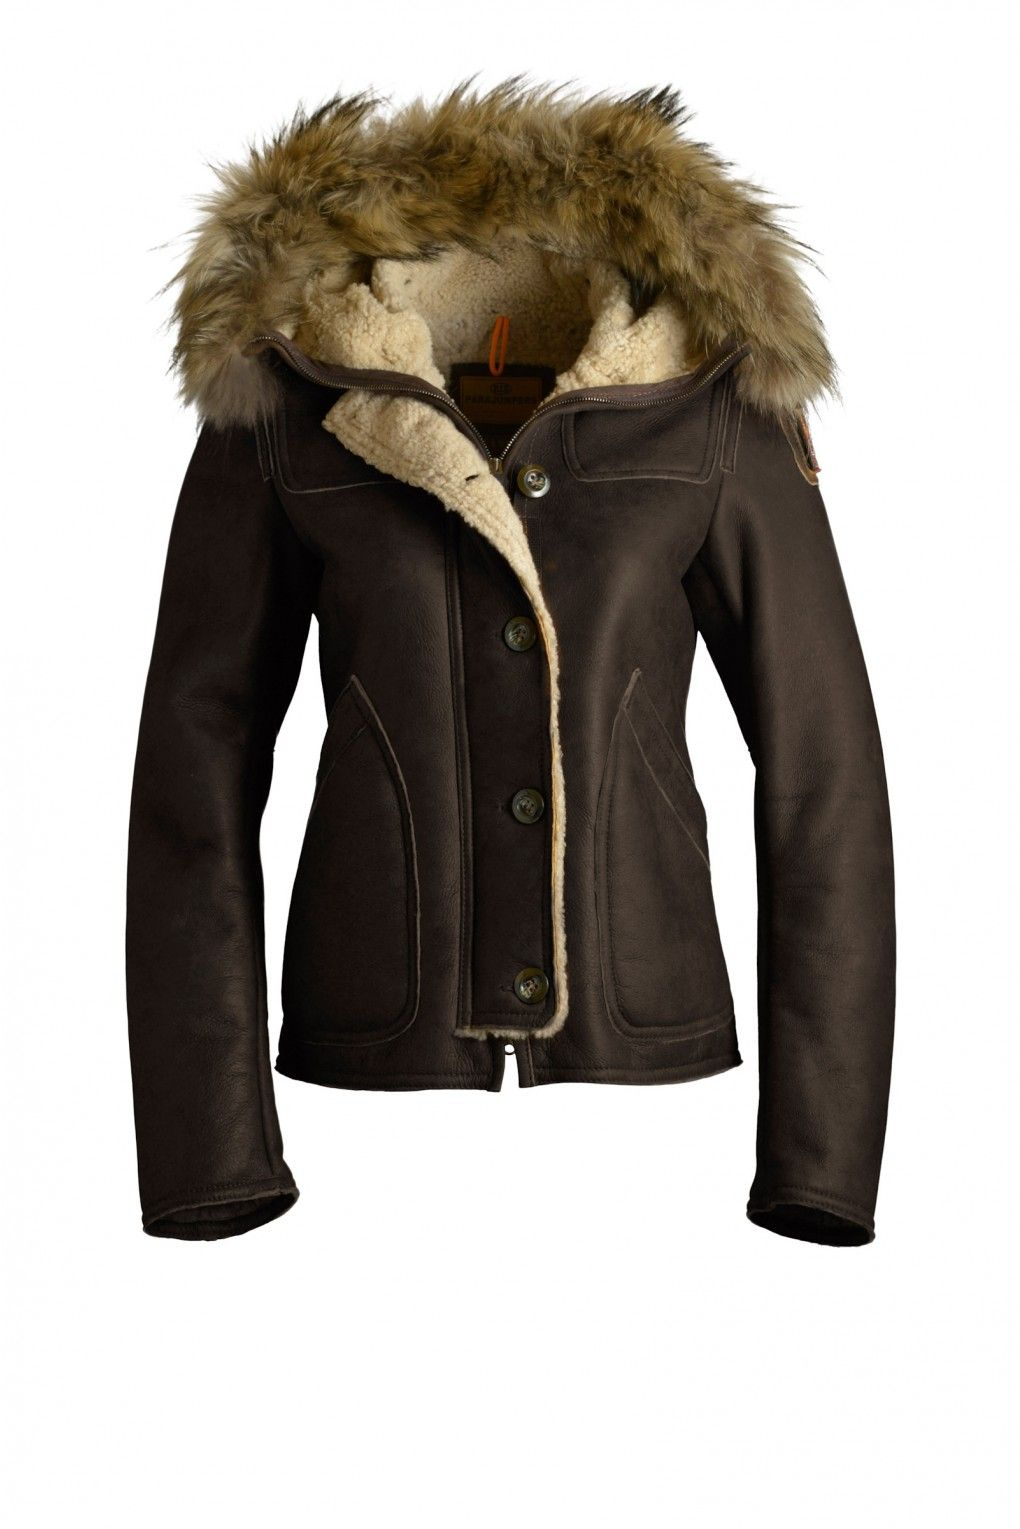 VANCOUVER - WOMAN - Leather & Shearling - Outerwear - WOMAN | Parajumpers